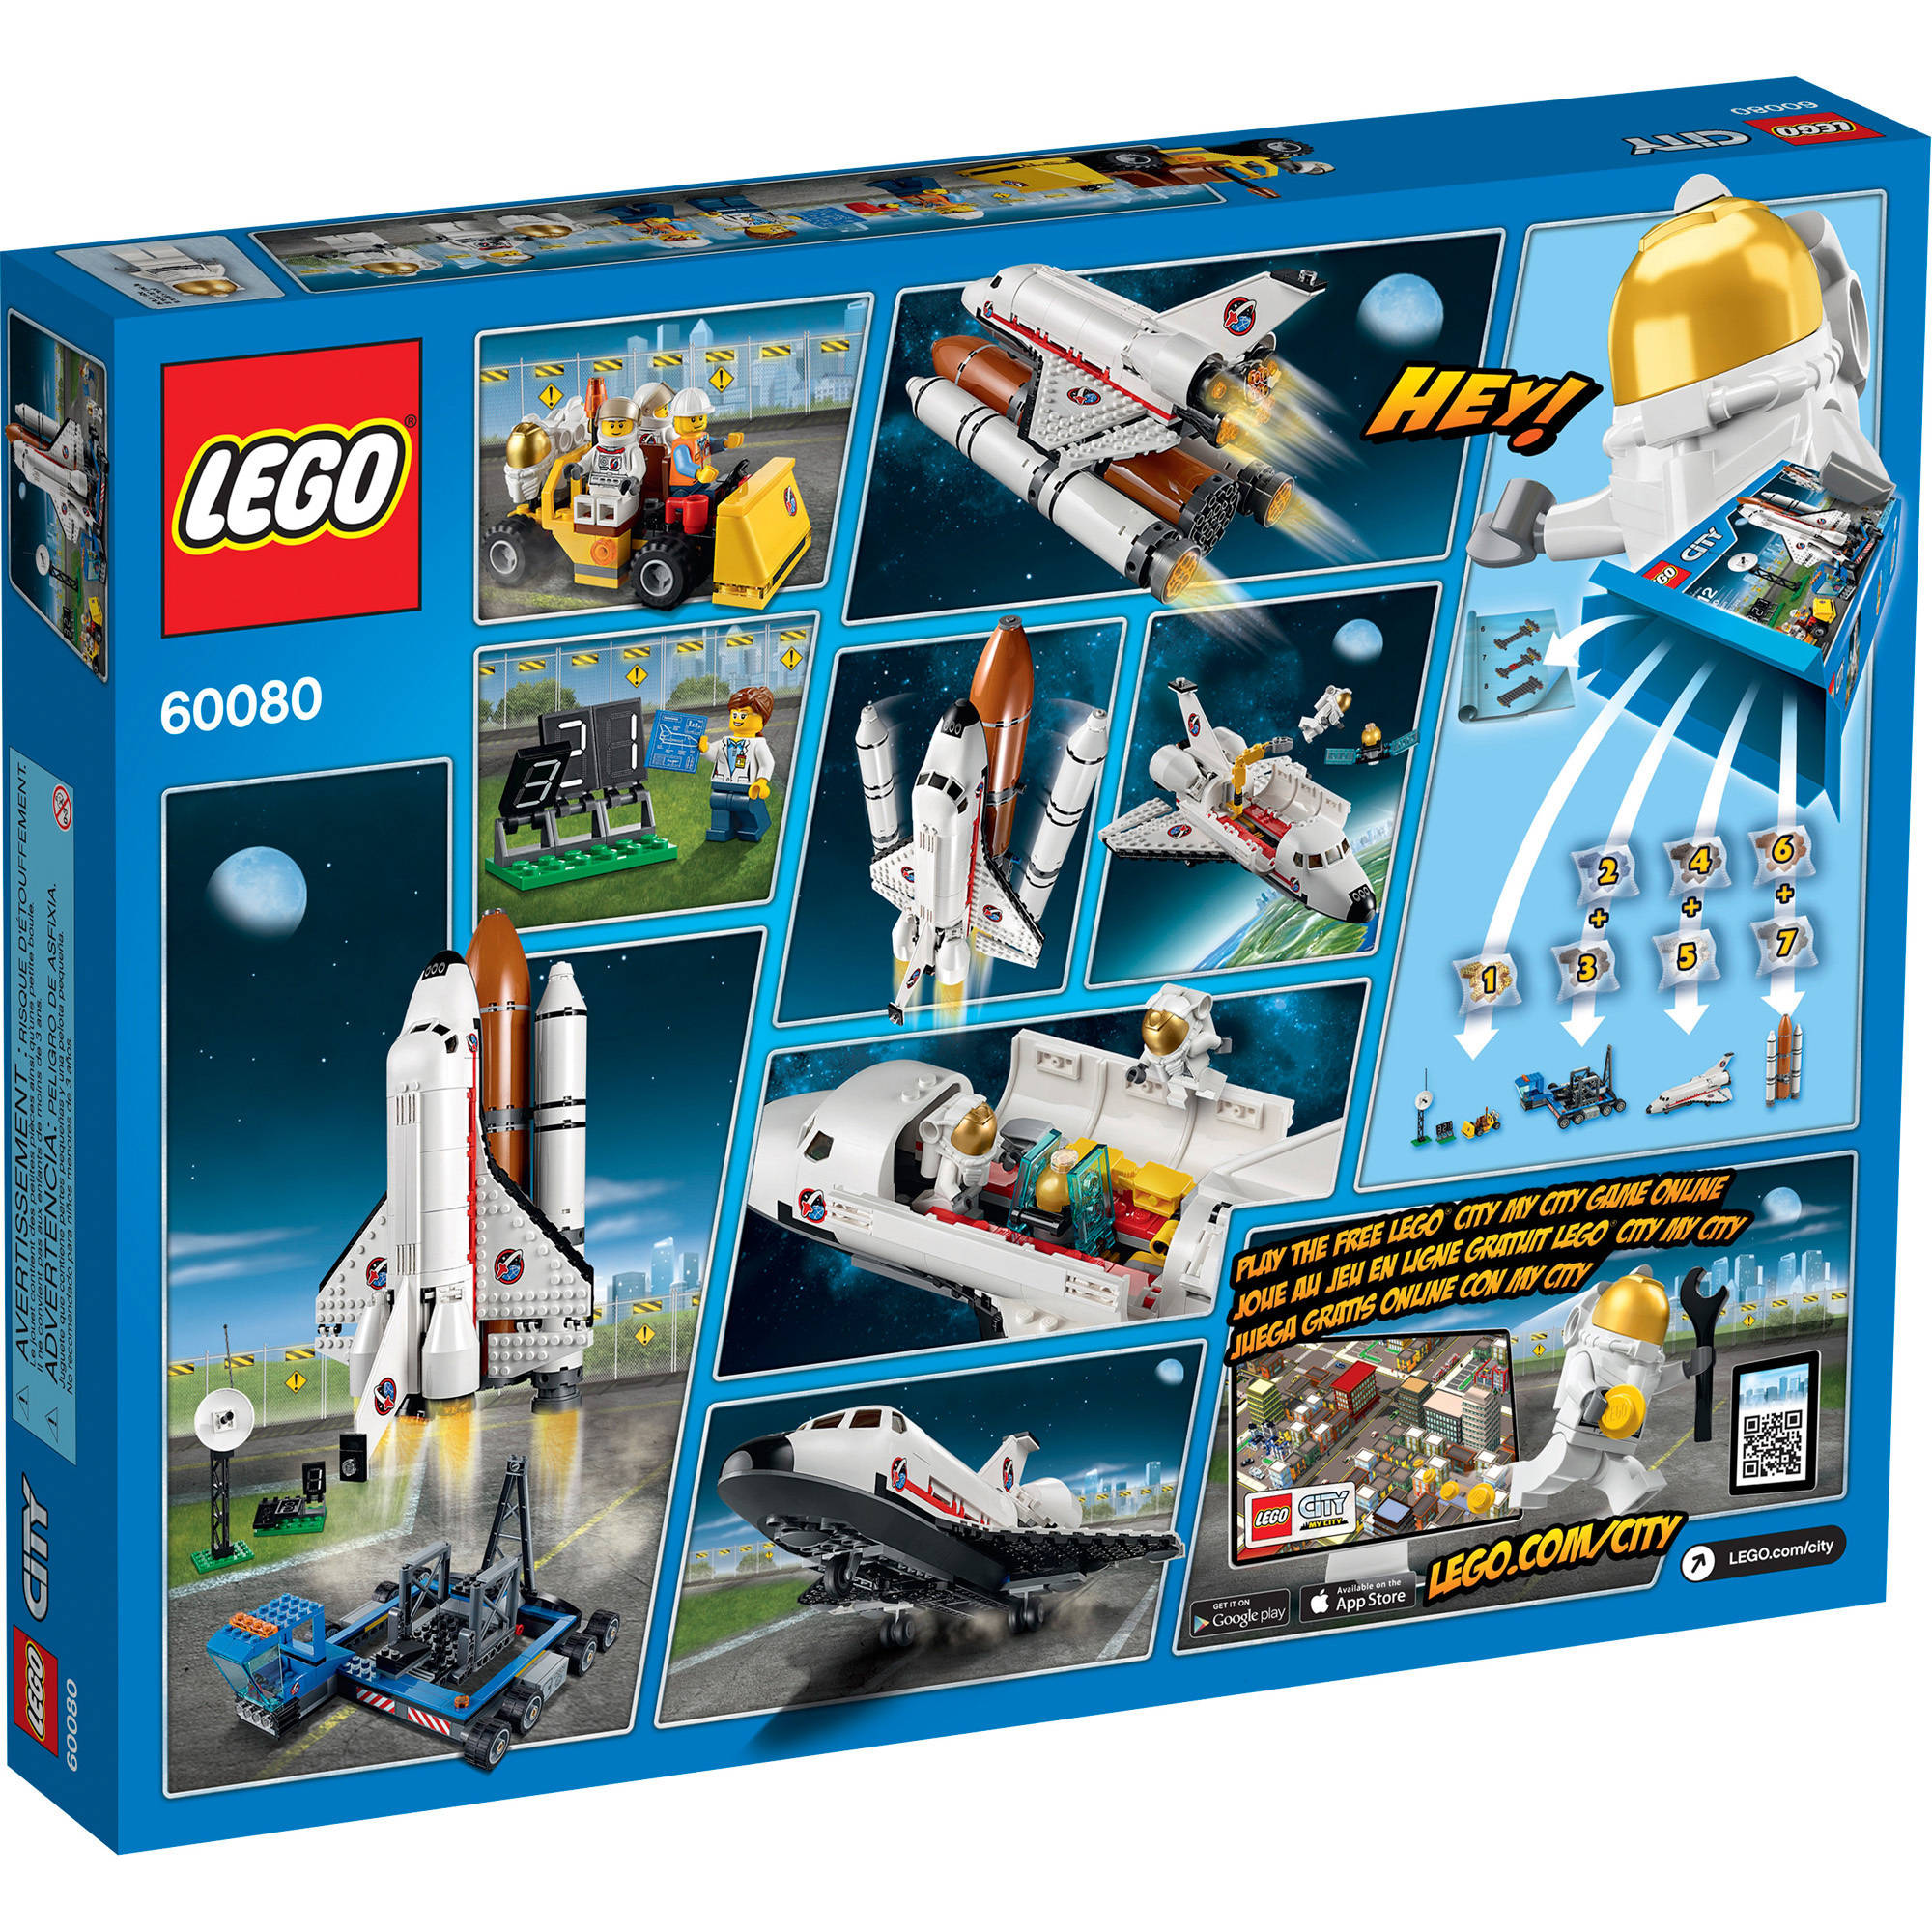 LEGO City Space Port 60080 Review - Great Christmas Toy Ideas